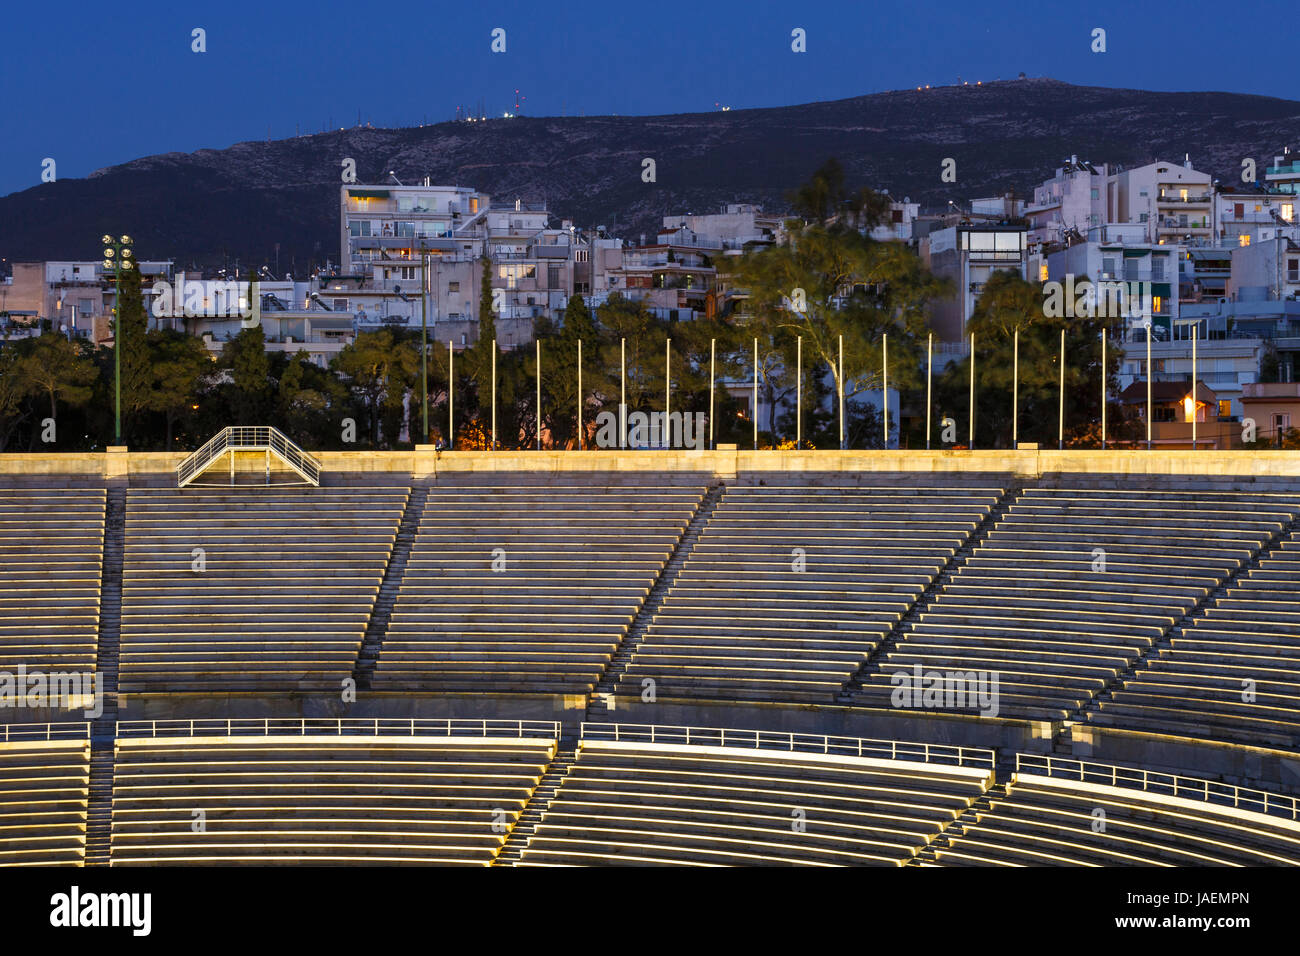 First Olympic stadium in Athens and one of the Athenian neighbourhoods, Greece. - Stock Image